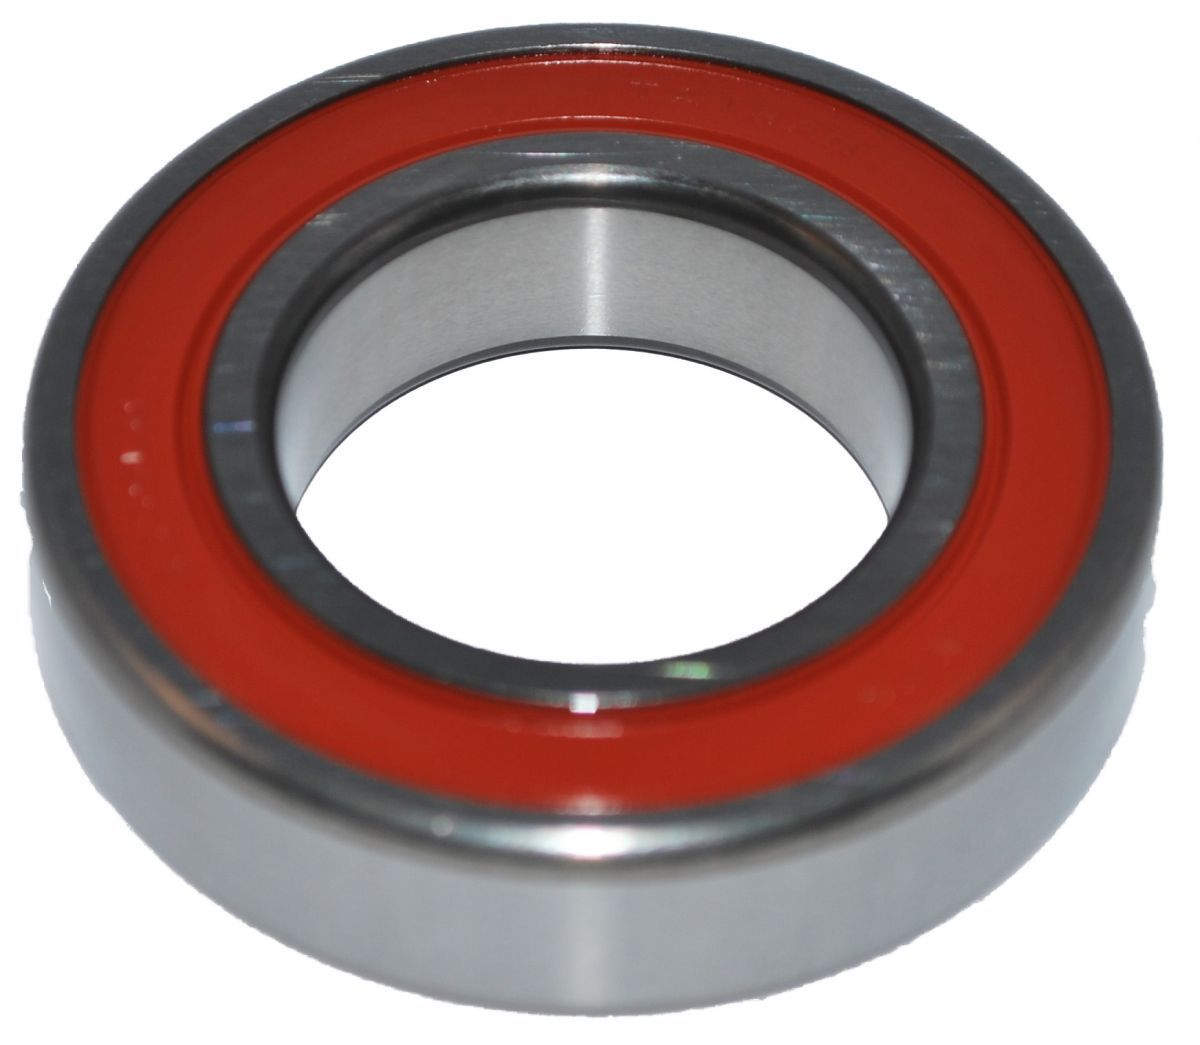 von arx fr200 ball bearing cover side